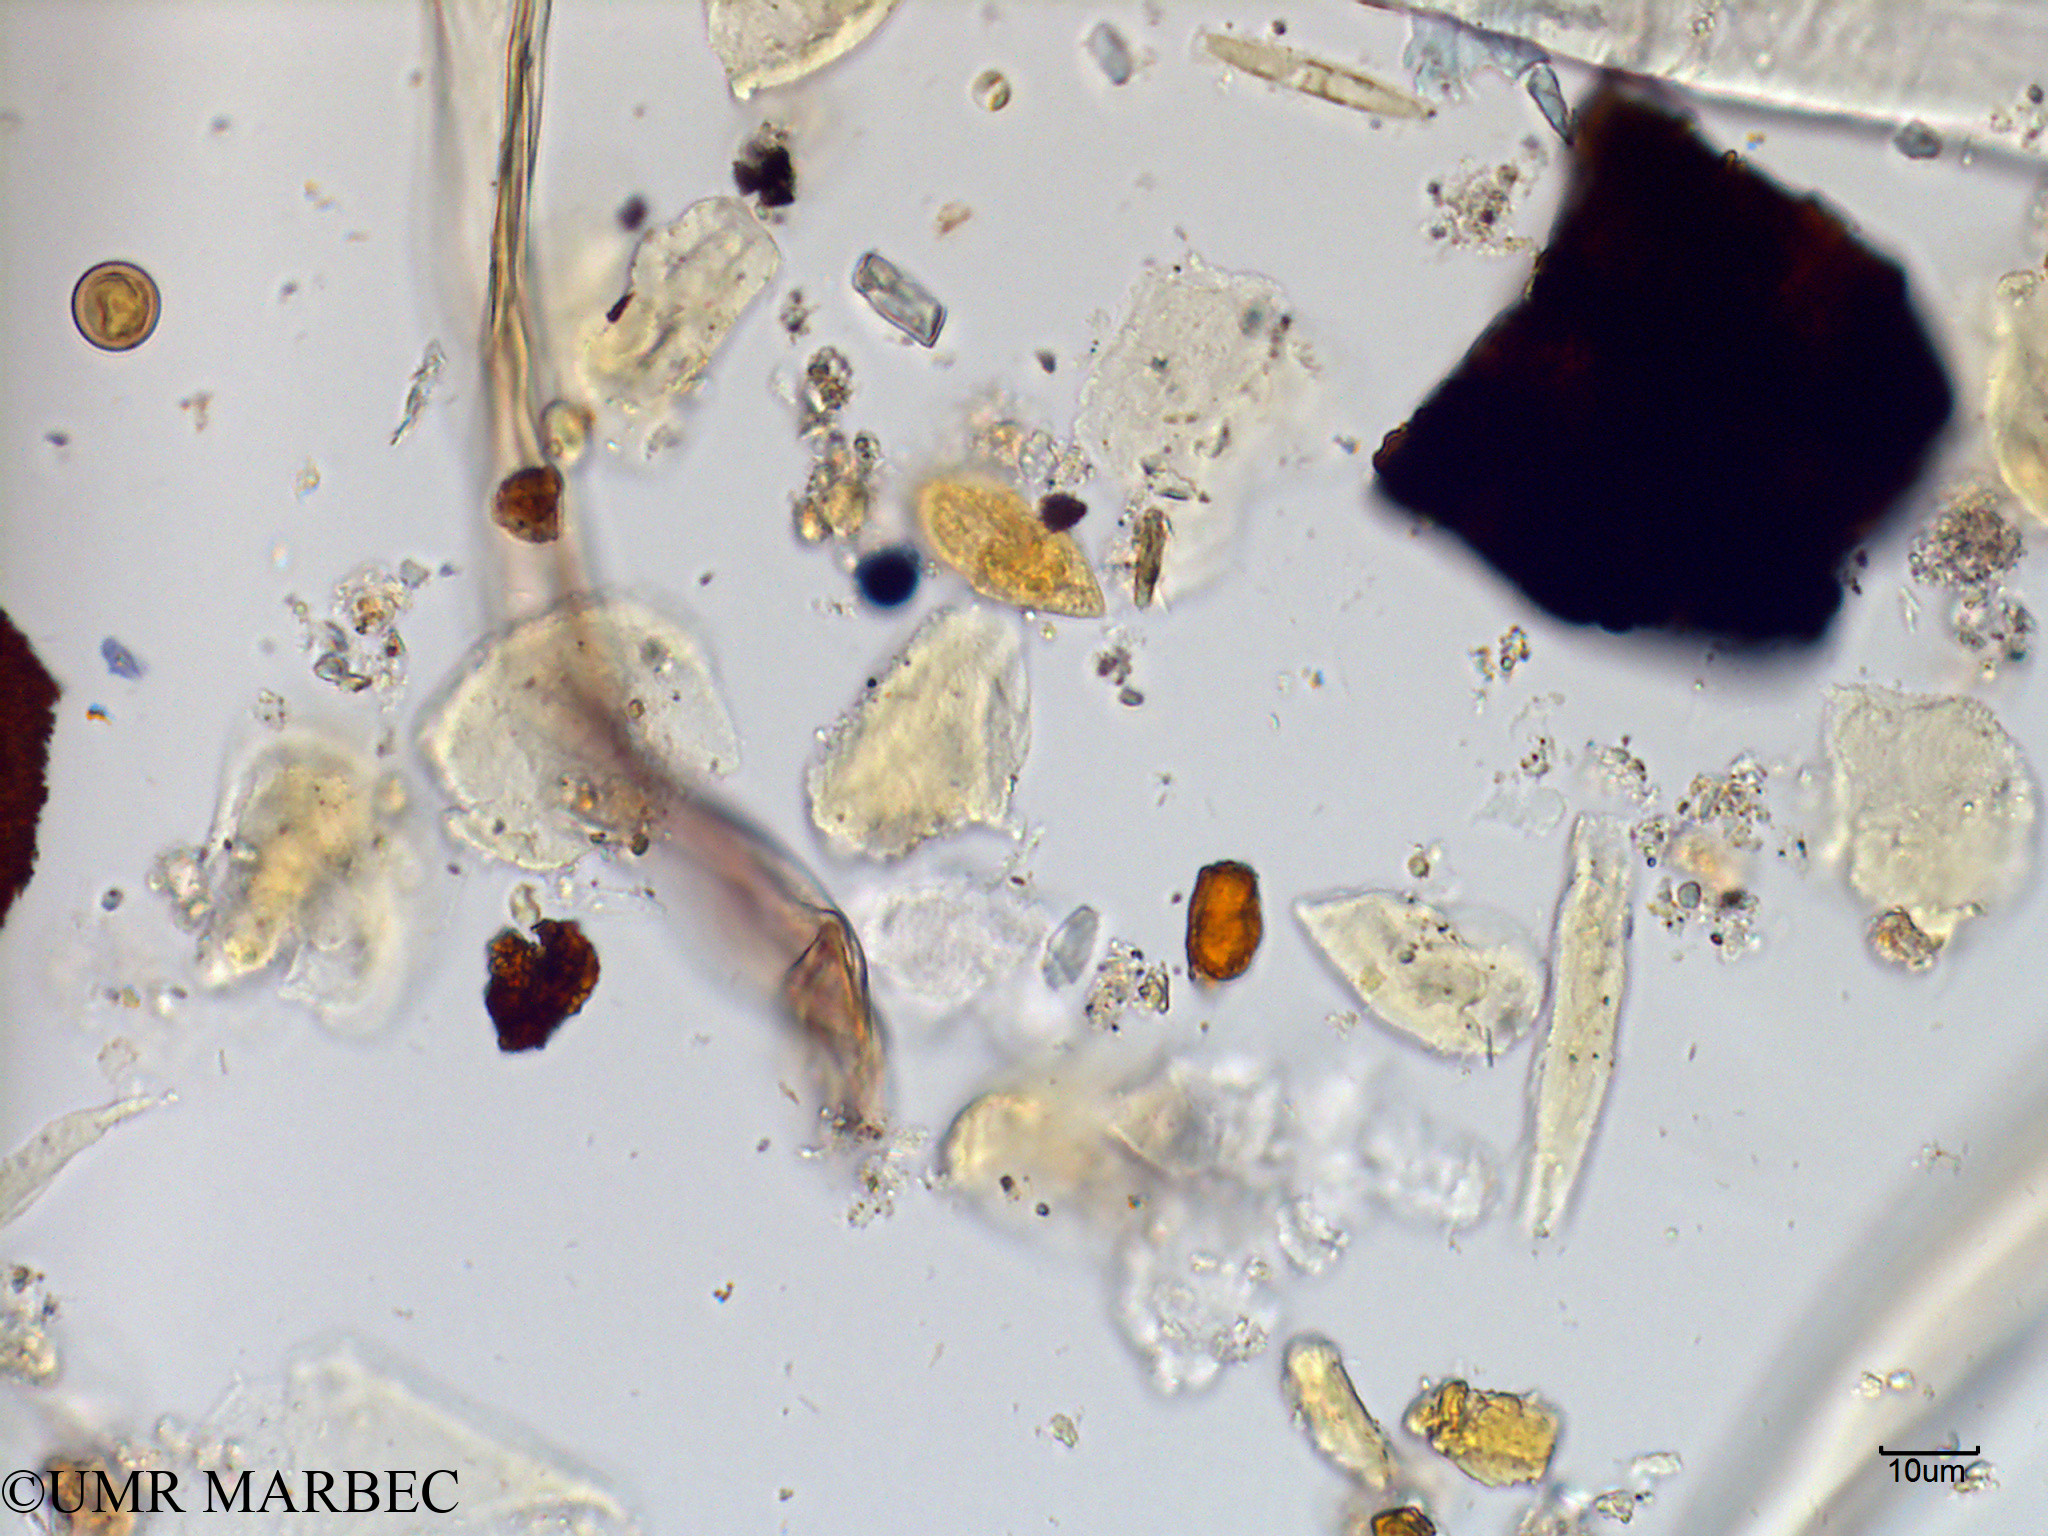 phyto/Scattered_Islands/mayotte_lagoon/SIREME May 2016/Katodinium sp (MAY2_dino cf cochlodinium-3).tif(copy).jpg